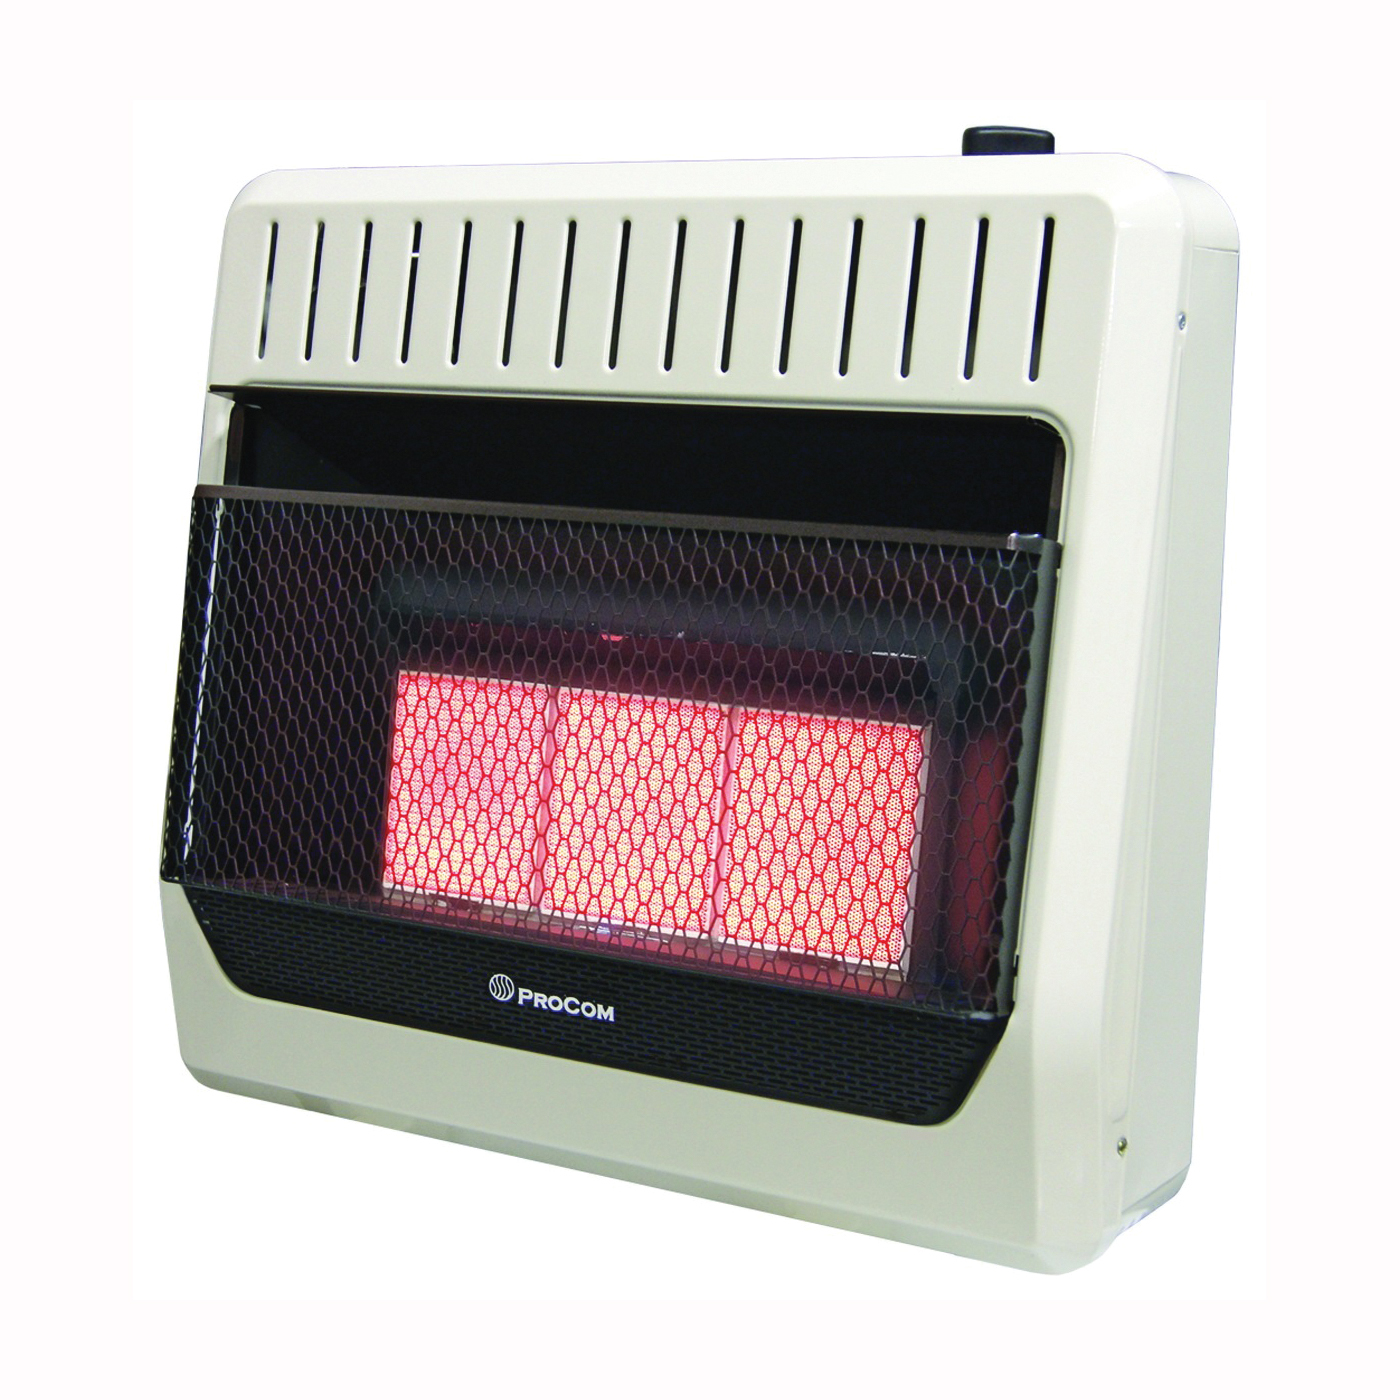 Picture of PROCOM HEATING MG3TIR Ventless Dual Fuel Heater, 25-1/2 in W, 24.1 in H, 28,000 to 30,000 Btu Heating